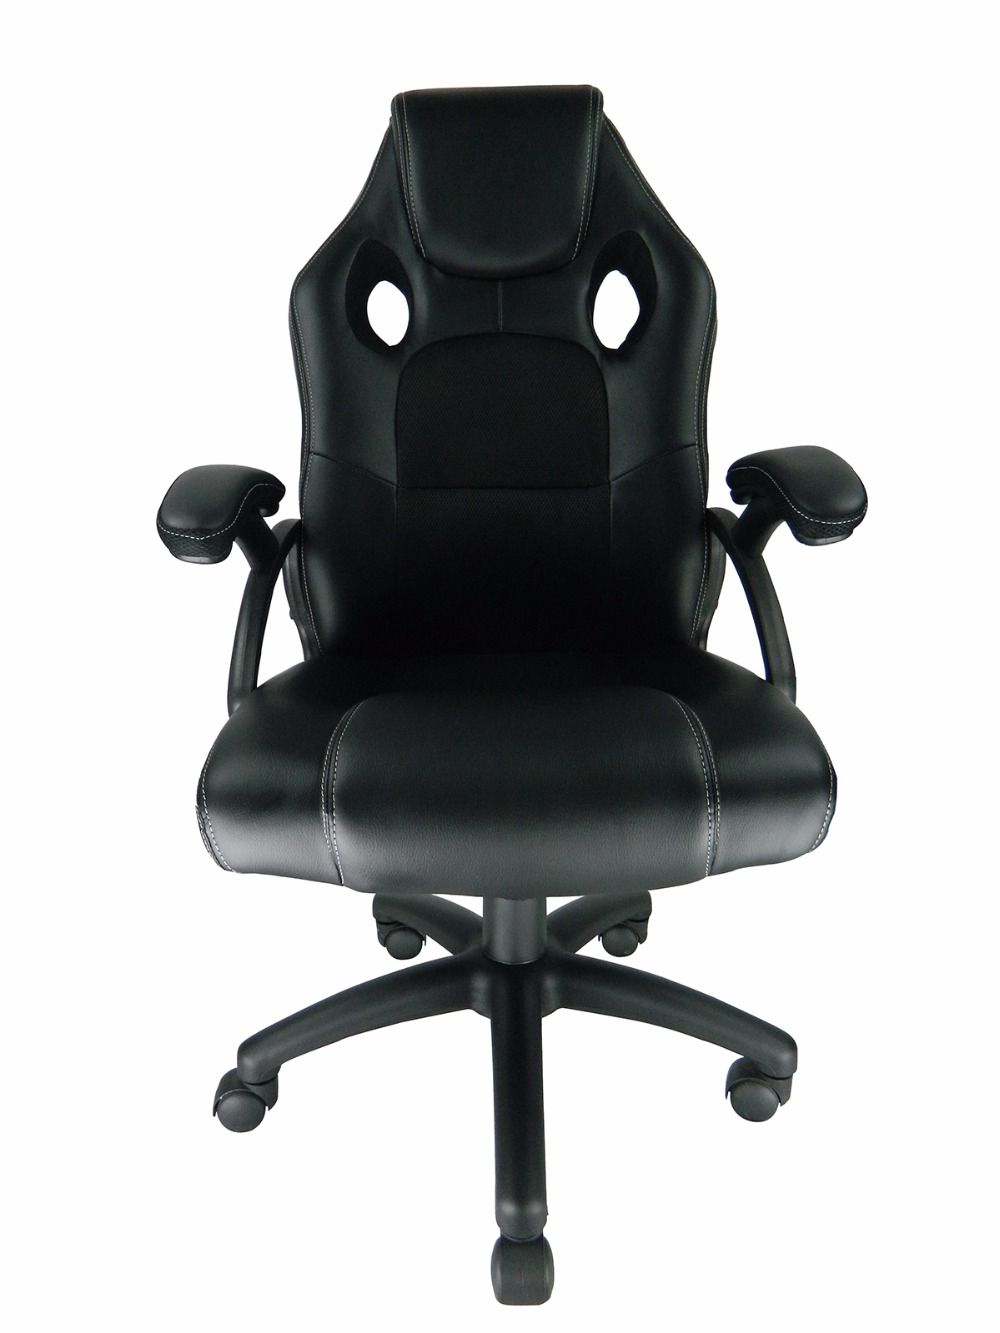 Gaming Office Chair Ergonomic Swivel Gaming Chair Tilt Control Exclusive Mesh Gas Lift HOT SALE racing chair gas lift swivel gaming chair tilt degree adjustable computer chair caster base hot sale